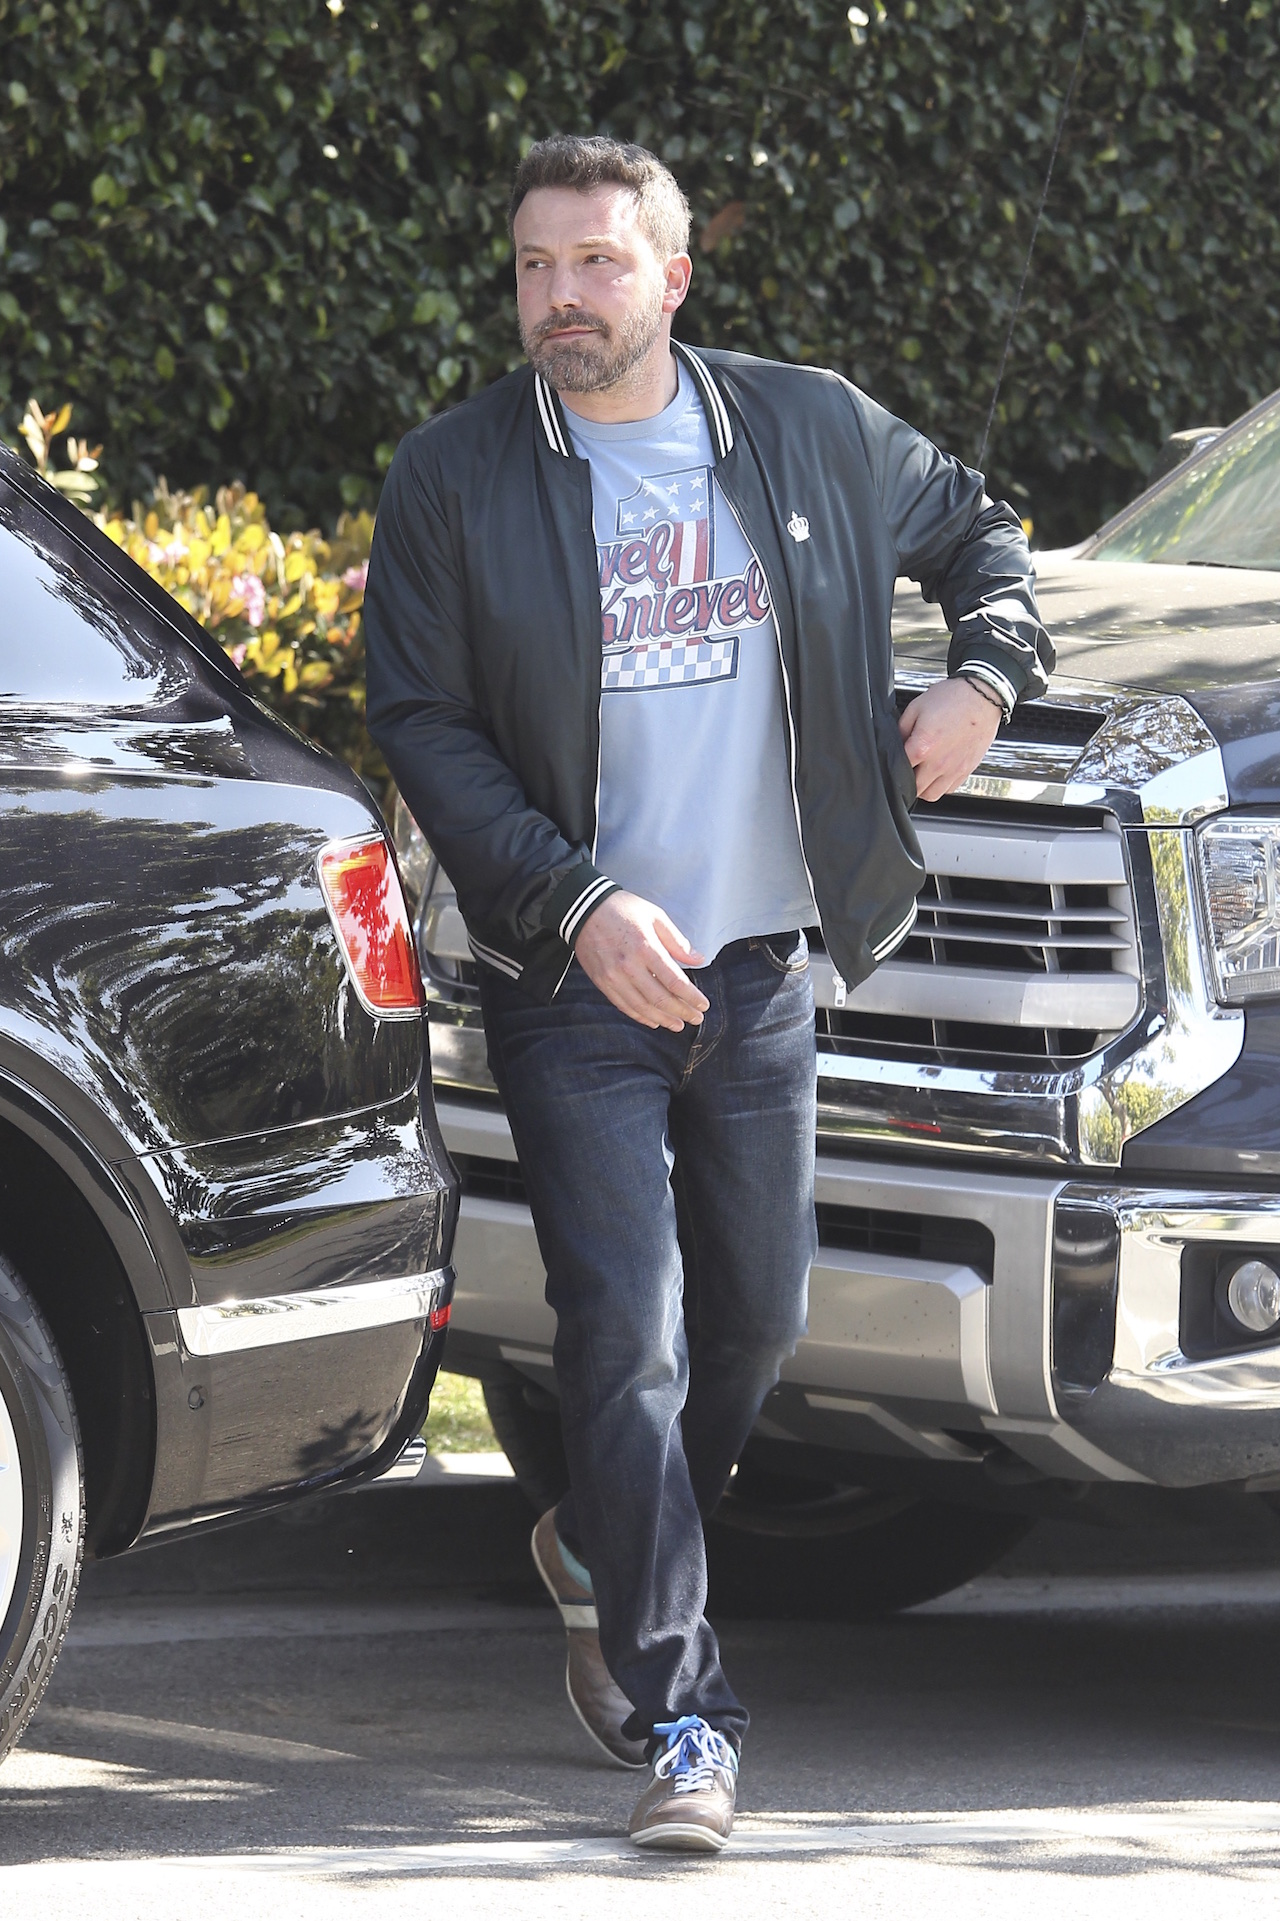 Ben Affleck and daughter Serafina bundle up in Santa Monica, CA. <P> Pictured: Ben affleck <B>Ref: SPL1464731  200317  </B><BR/> Picture by: Splash News<BR/> </P><P> <B>Splash News and Pictures</B><BR/> Los Angeles: 310-821-2666<BR/> New York: 212-619-2666<BR/> London: 870-934-2666<BR/> photodesk@splashnews.com<BR/> </P>